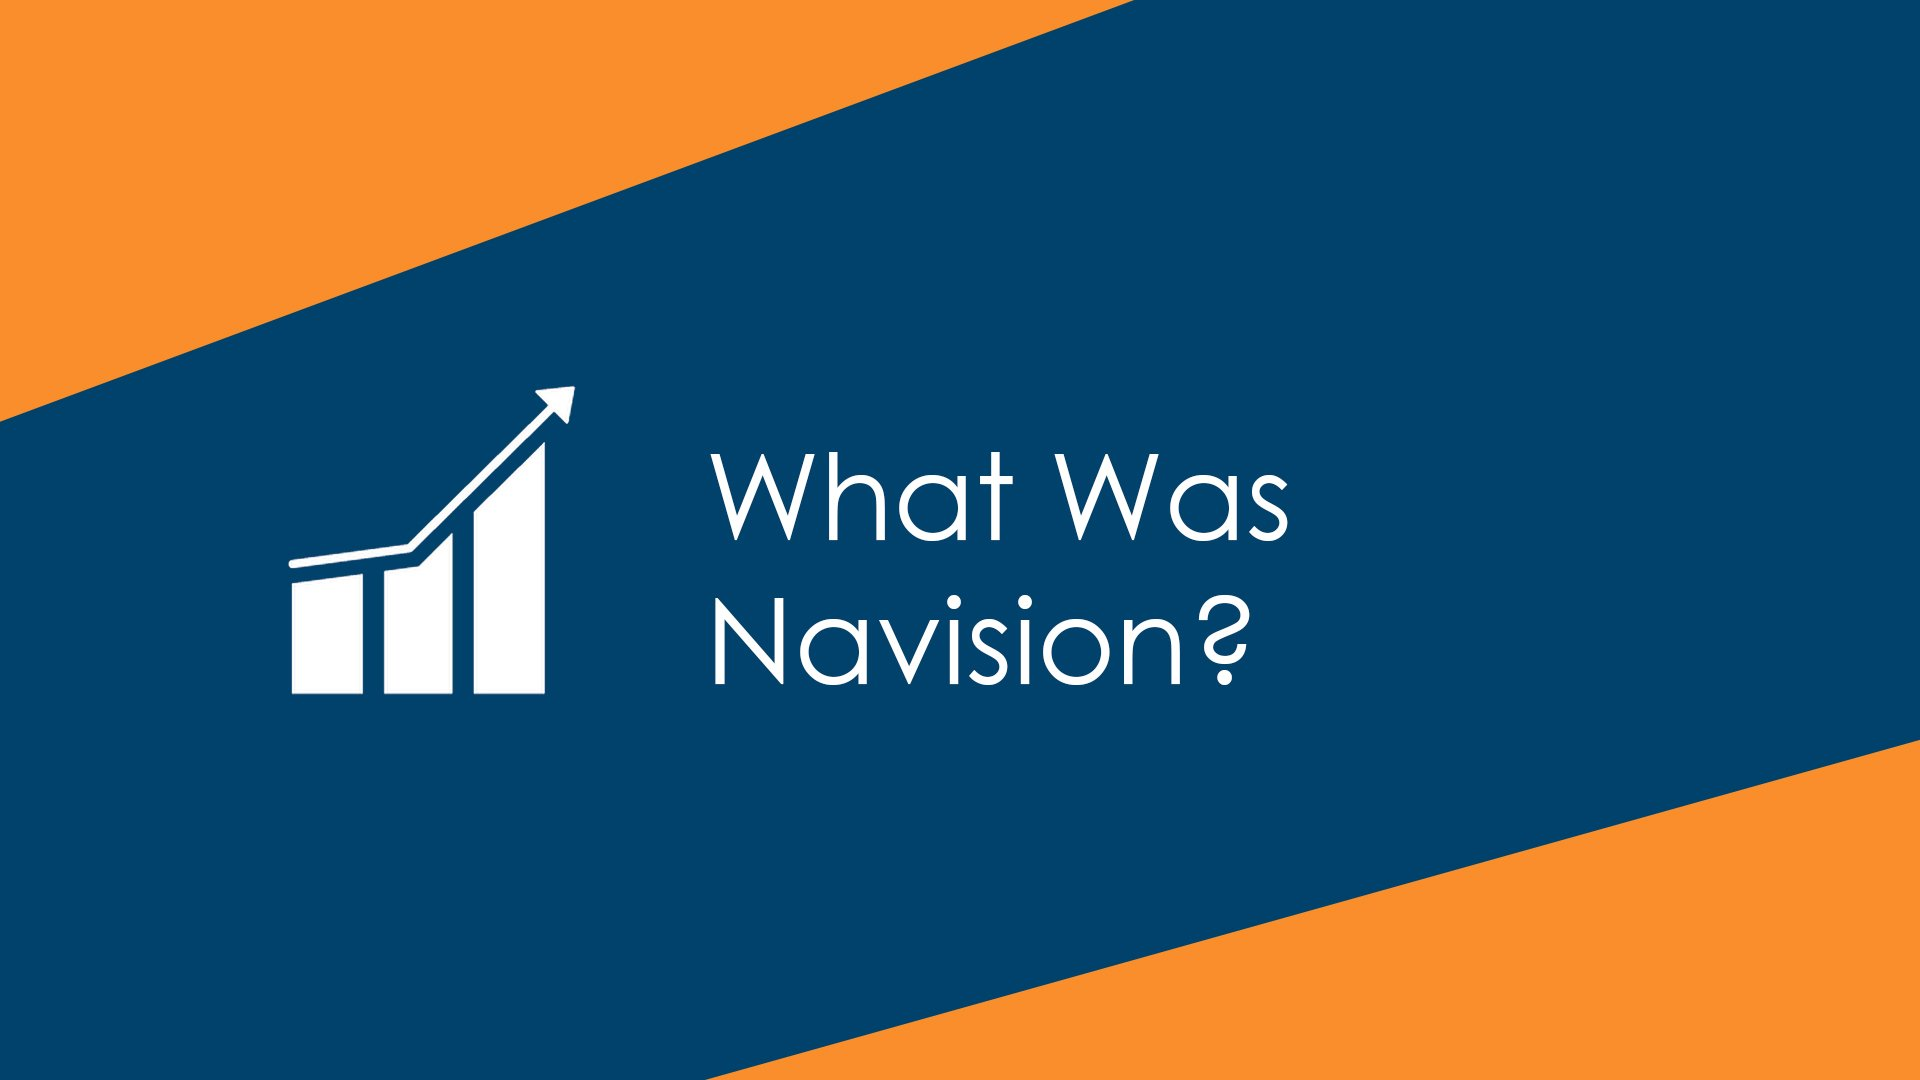 What Was Navision?